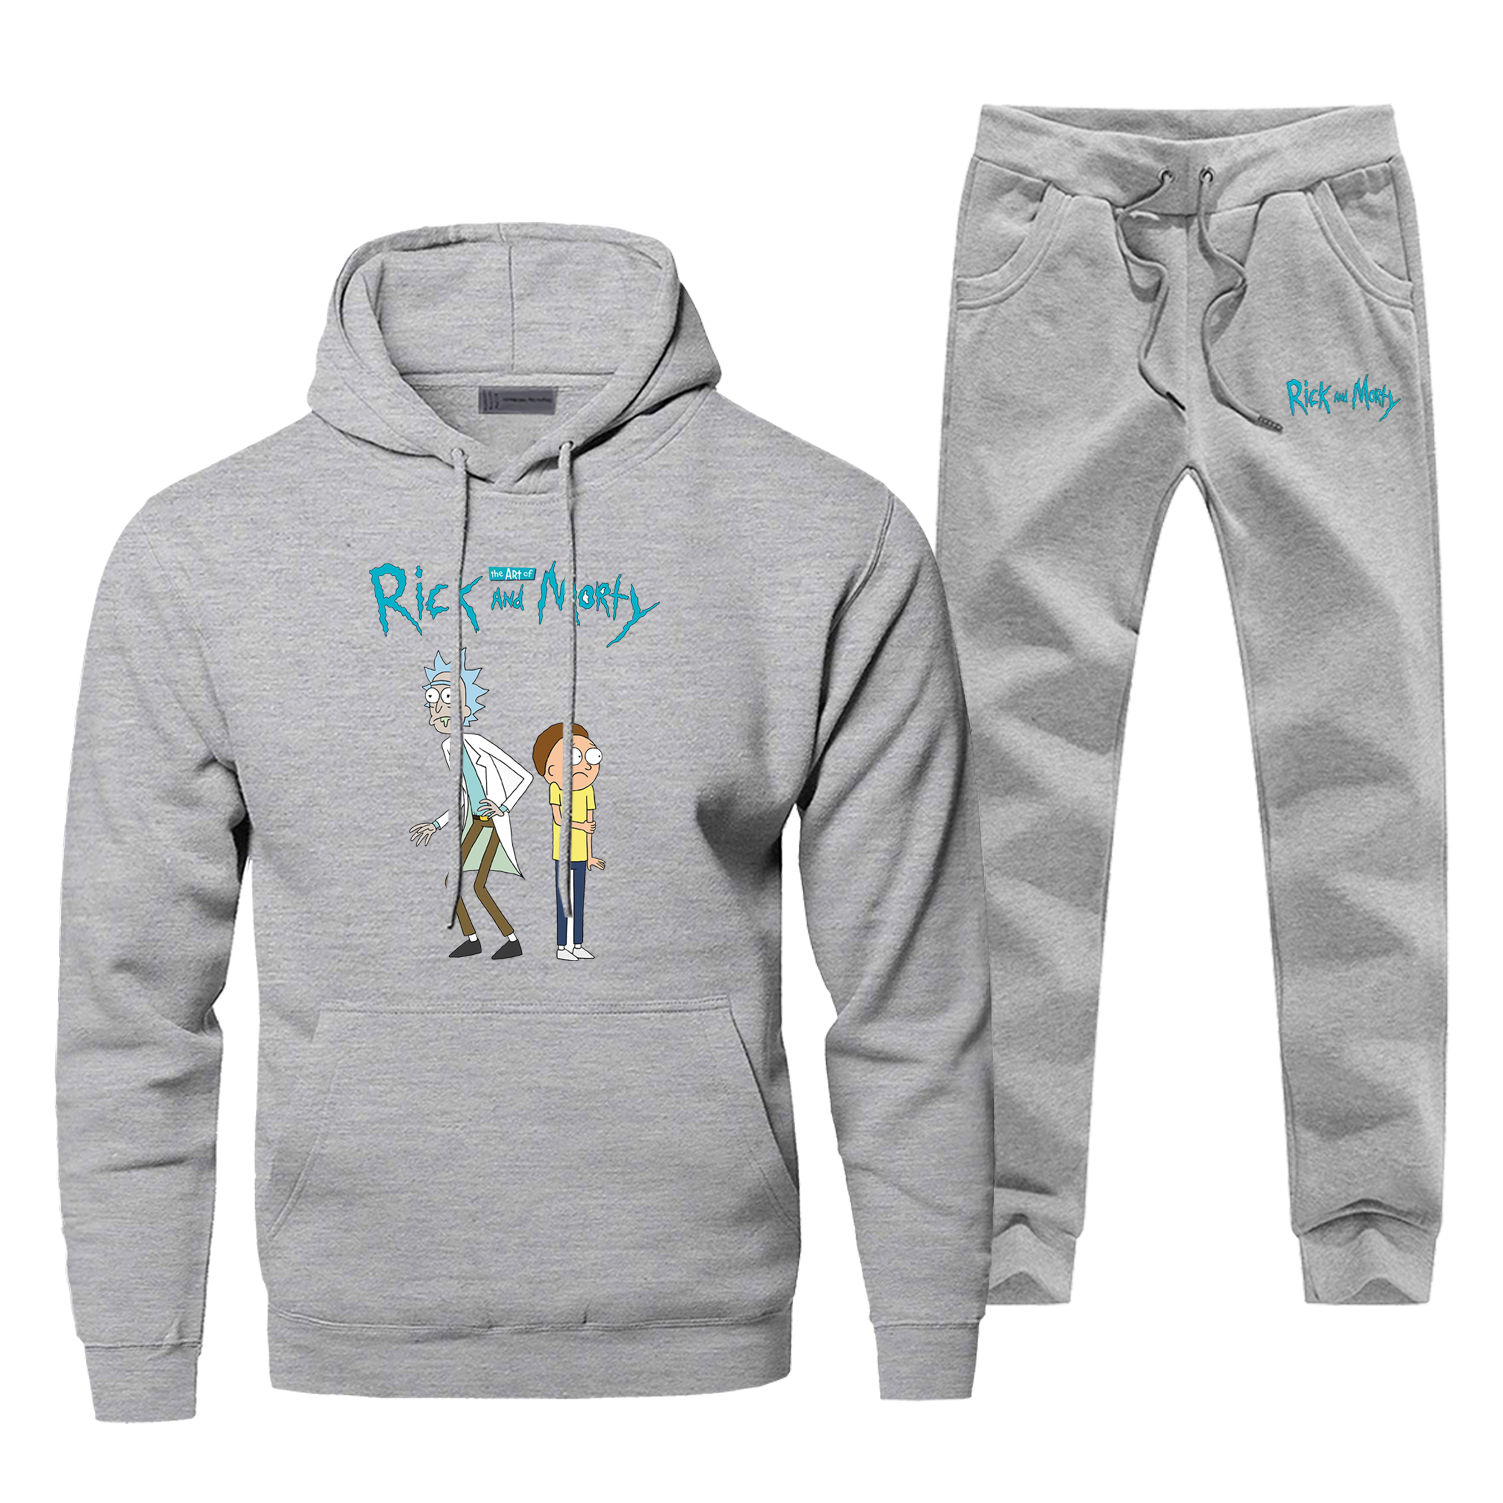 Rick And Morty Hoodies Pants Sets Men Cartoon Suit Tracksuit 2 Piece Top Pant Sweatshirt Sweatpants Sportswear Autumn Sports Set